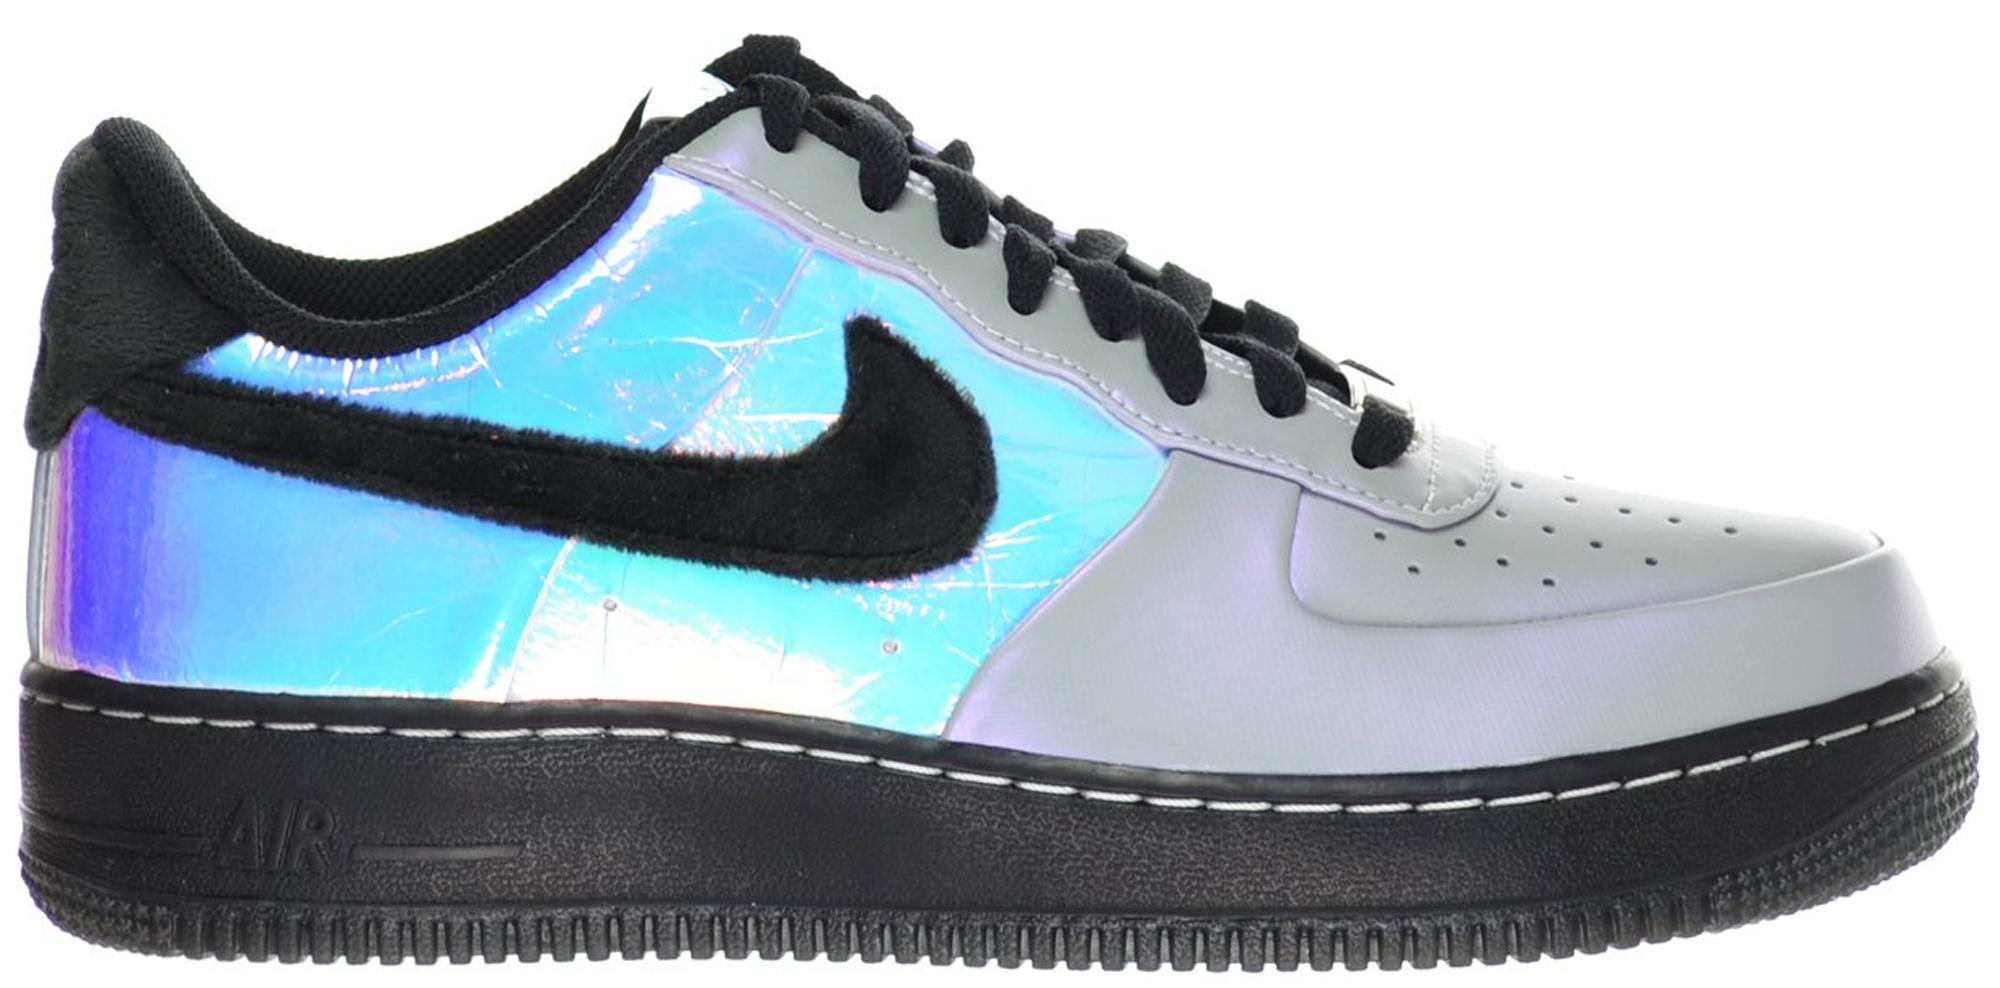 Nike Air Force 1 Low Cmft Hologram for